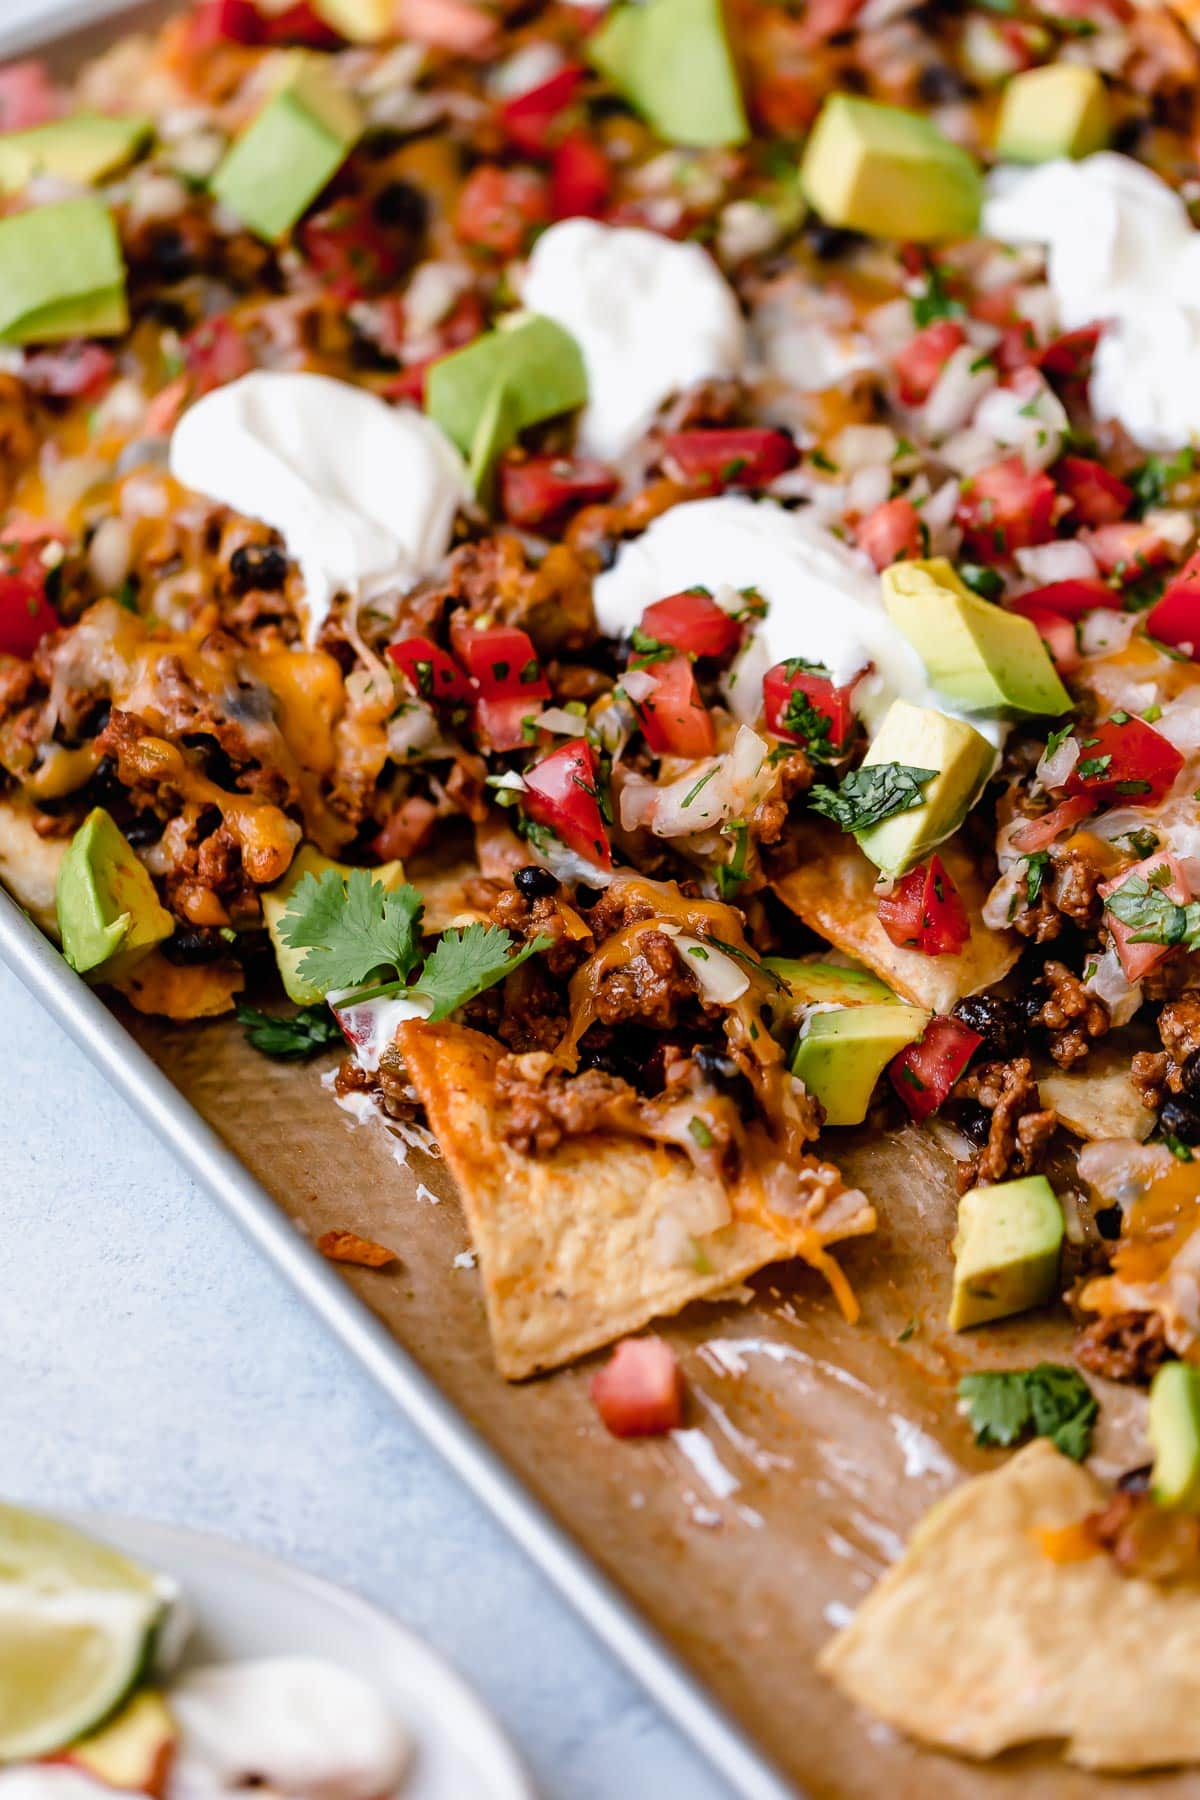 Nachos on a baking sheet with beef, black beans, cheese, pico, and sour cream.